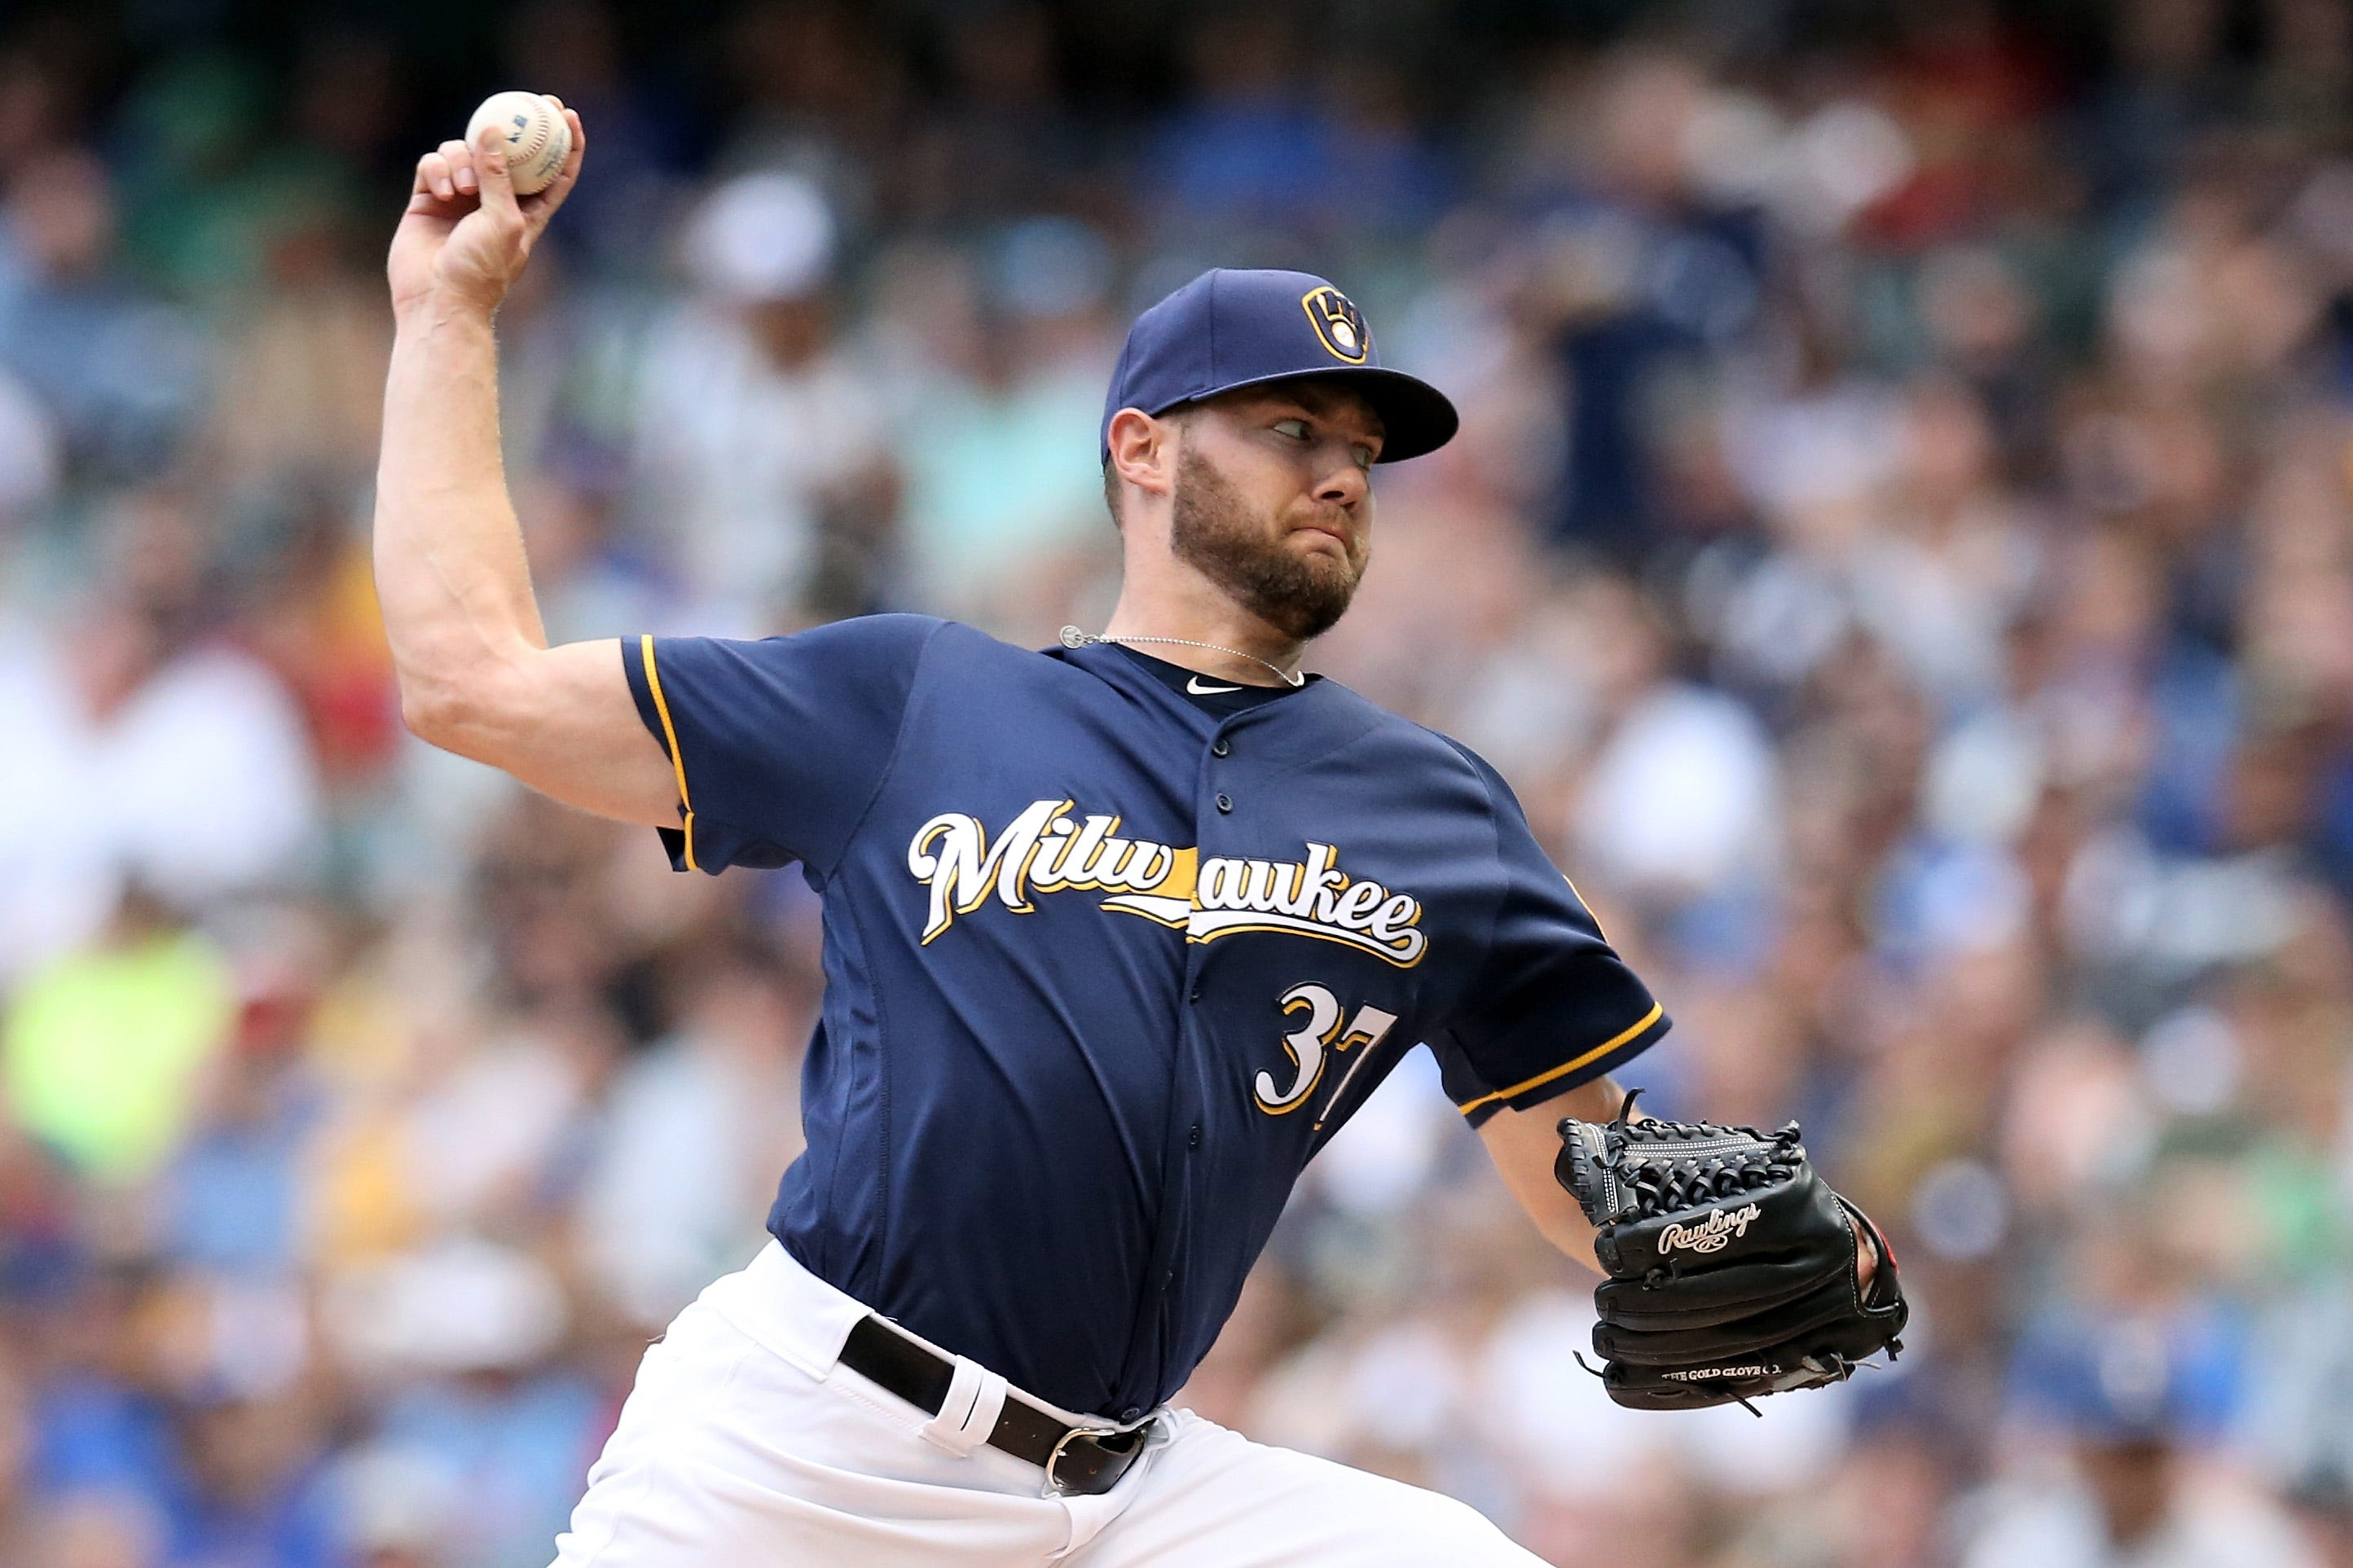 Brewers pitcher Adrian Houser threw up on the mound (again) after error thumbnail